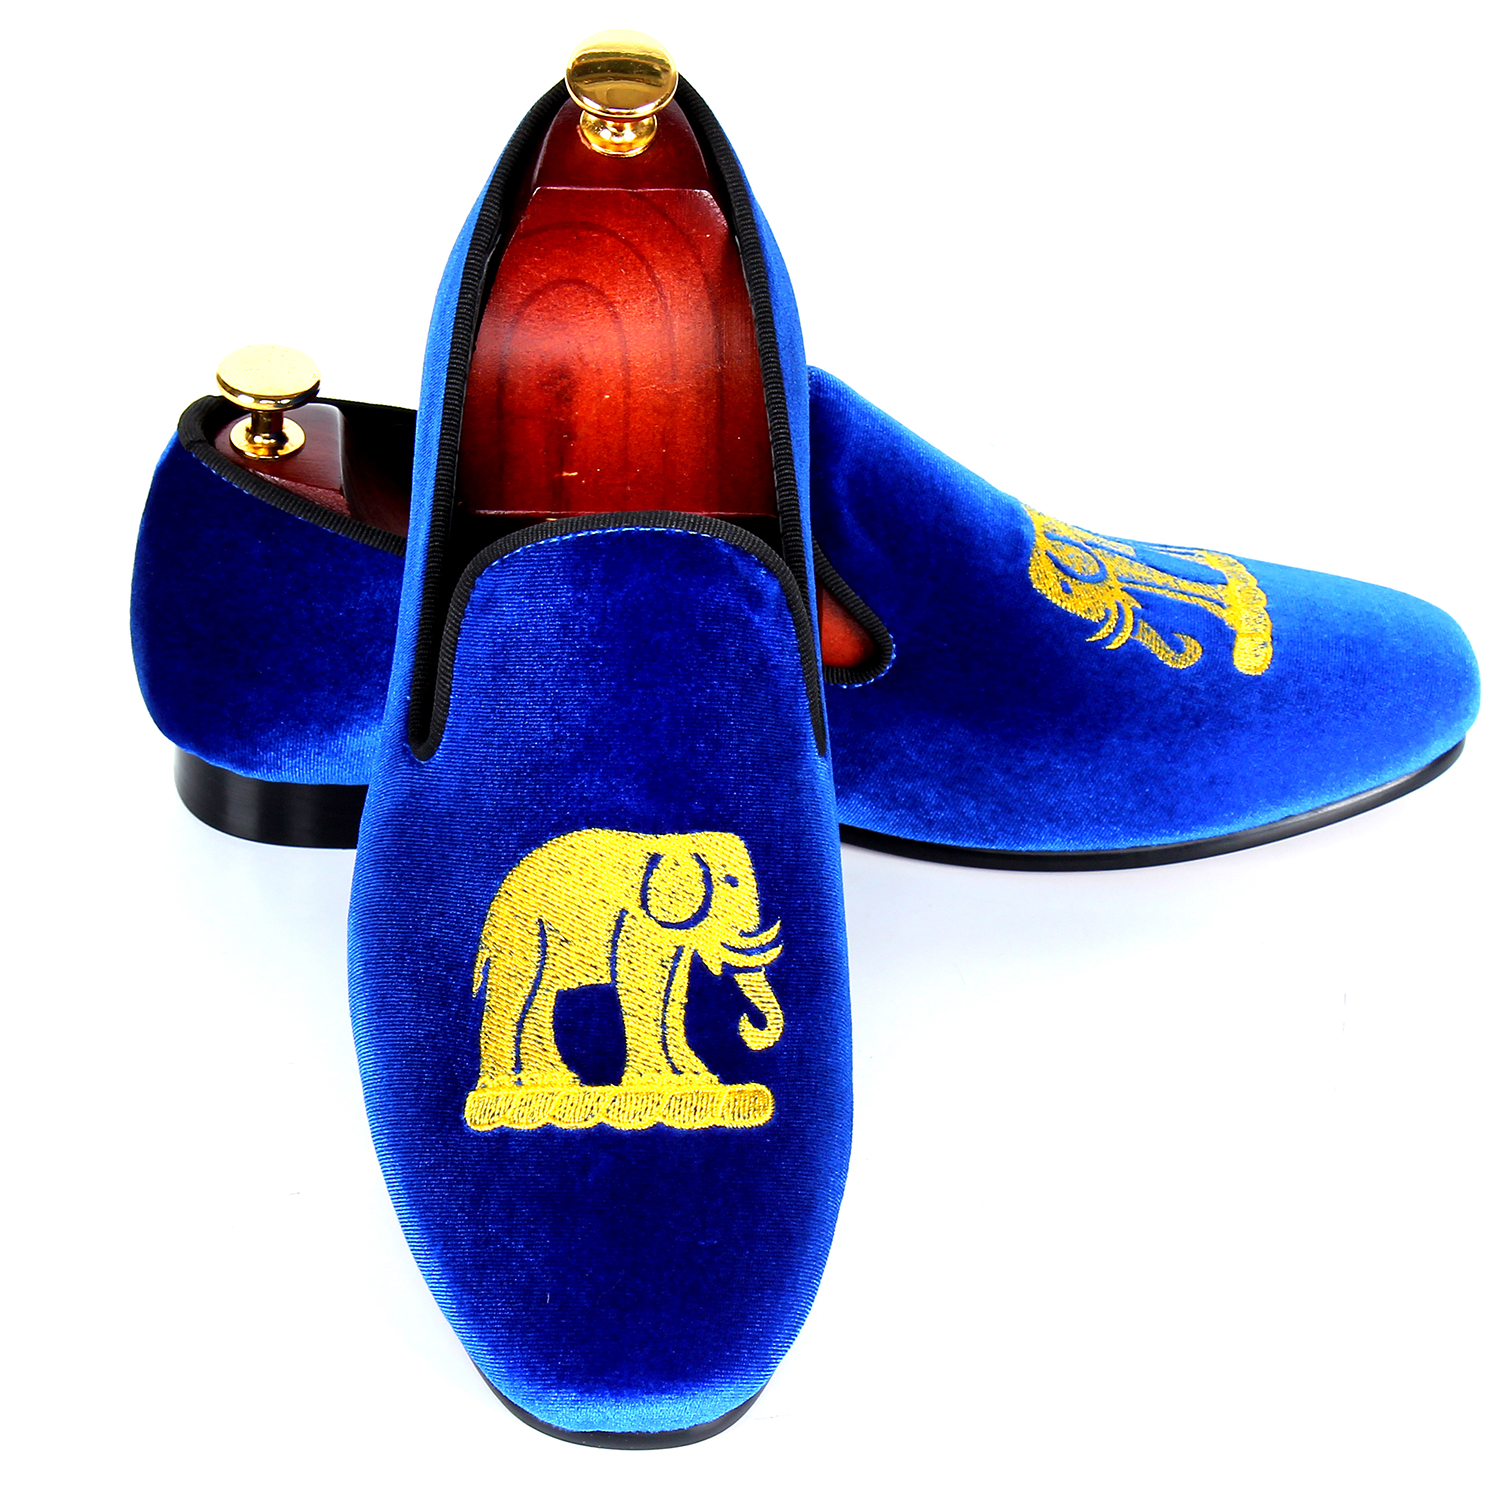 Blue Velvet Loafers For Men Handmade Embroidery Smoking Slippers Leisure Shoes Flats Red Bottom Sole Free Shipping Size 7-13 men casual shoes green velvet loafers prince albert slippers handmade embroidered footwear